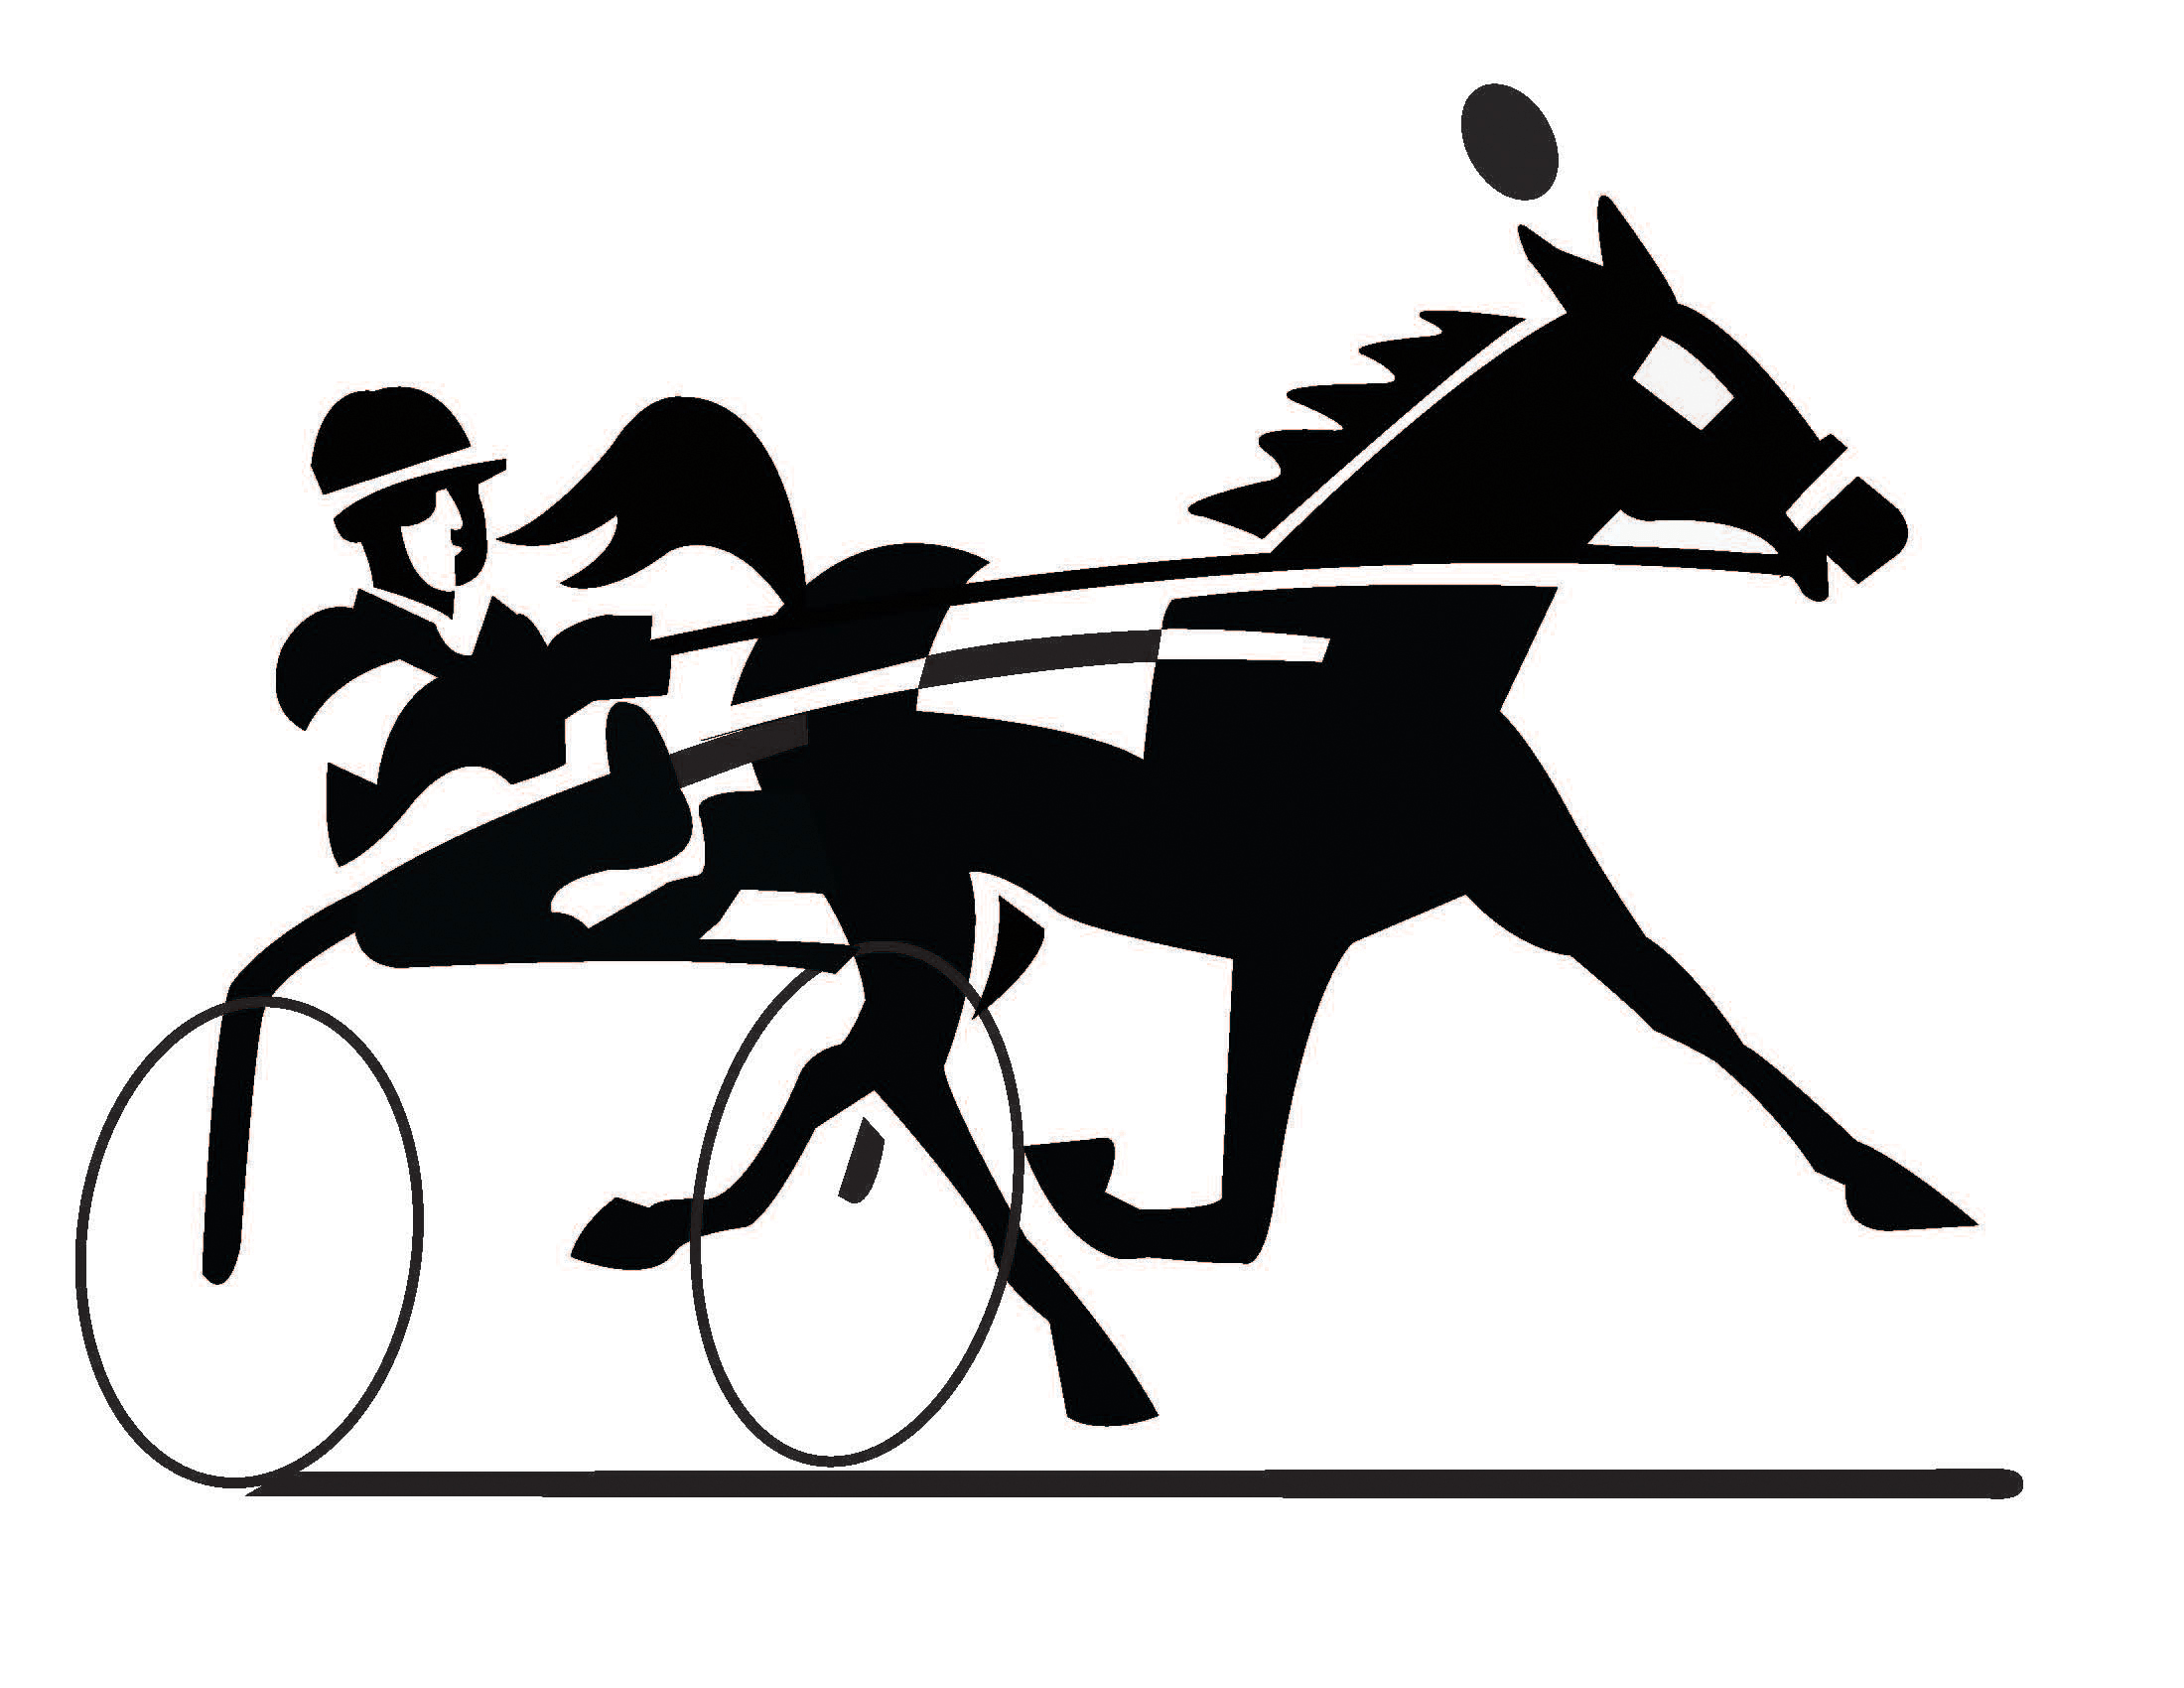 Horse Racing Racing Clip Art Free Image 3 Image